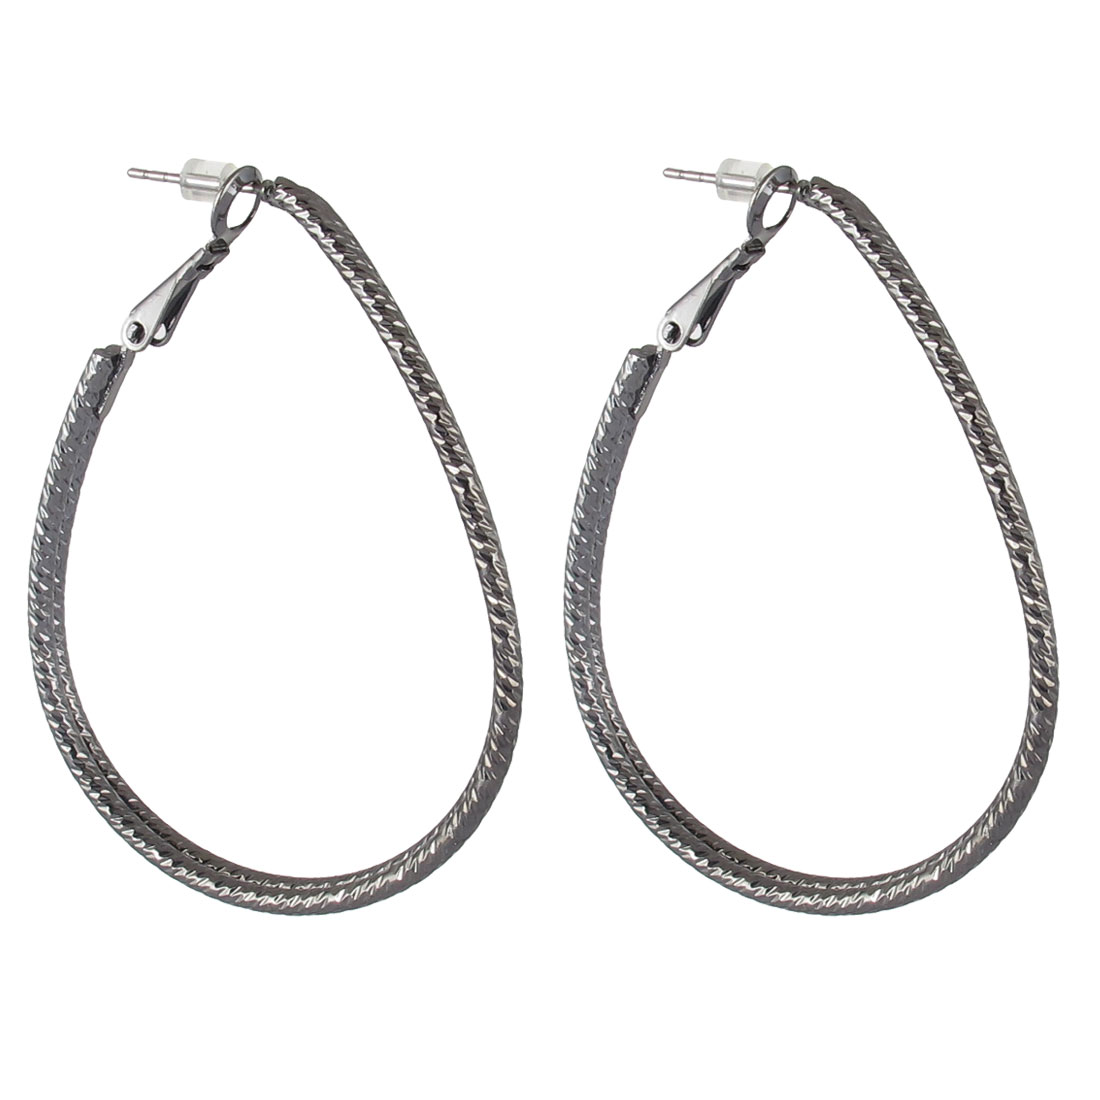 "2.2"" Dia Black Metal Elegant Stylish Narrow Ellipses Textured Edge Hoop Pierced Earrings Pair for Lady Women"